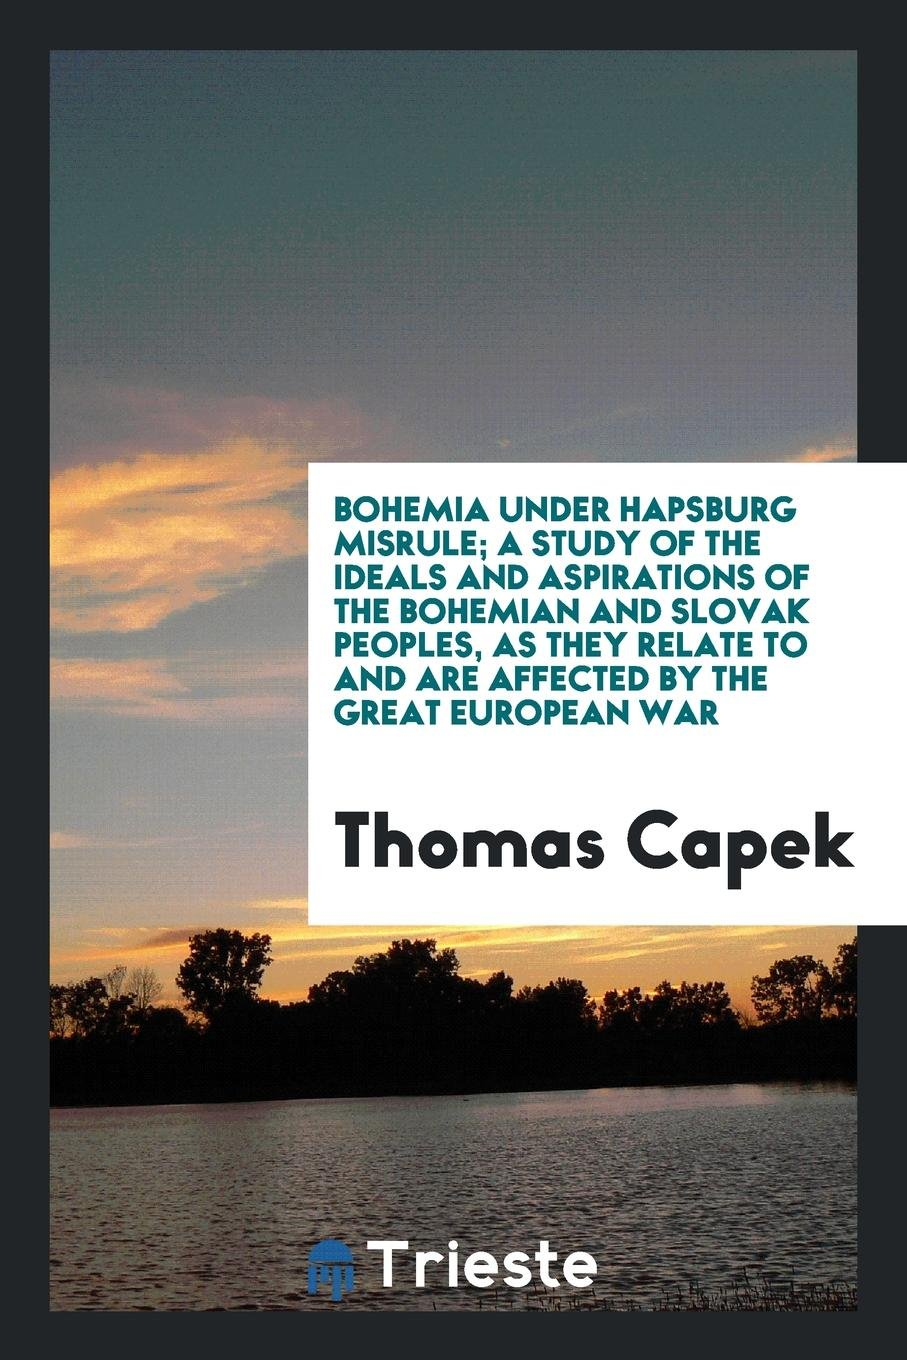 Bohemia Under Hapsburg Misrule; A Study of the Ideals and Aspirations of the Bohemian and Slovak Peoples, as They Relate to and Are Affected by the Great European War pdf epub